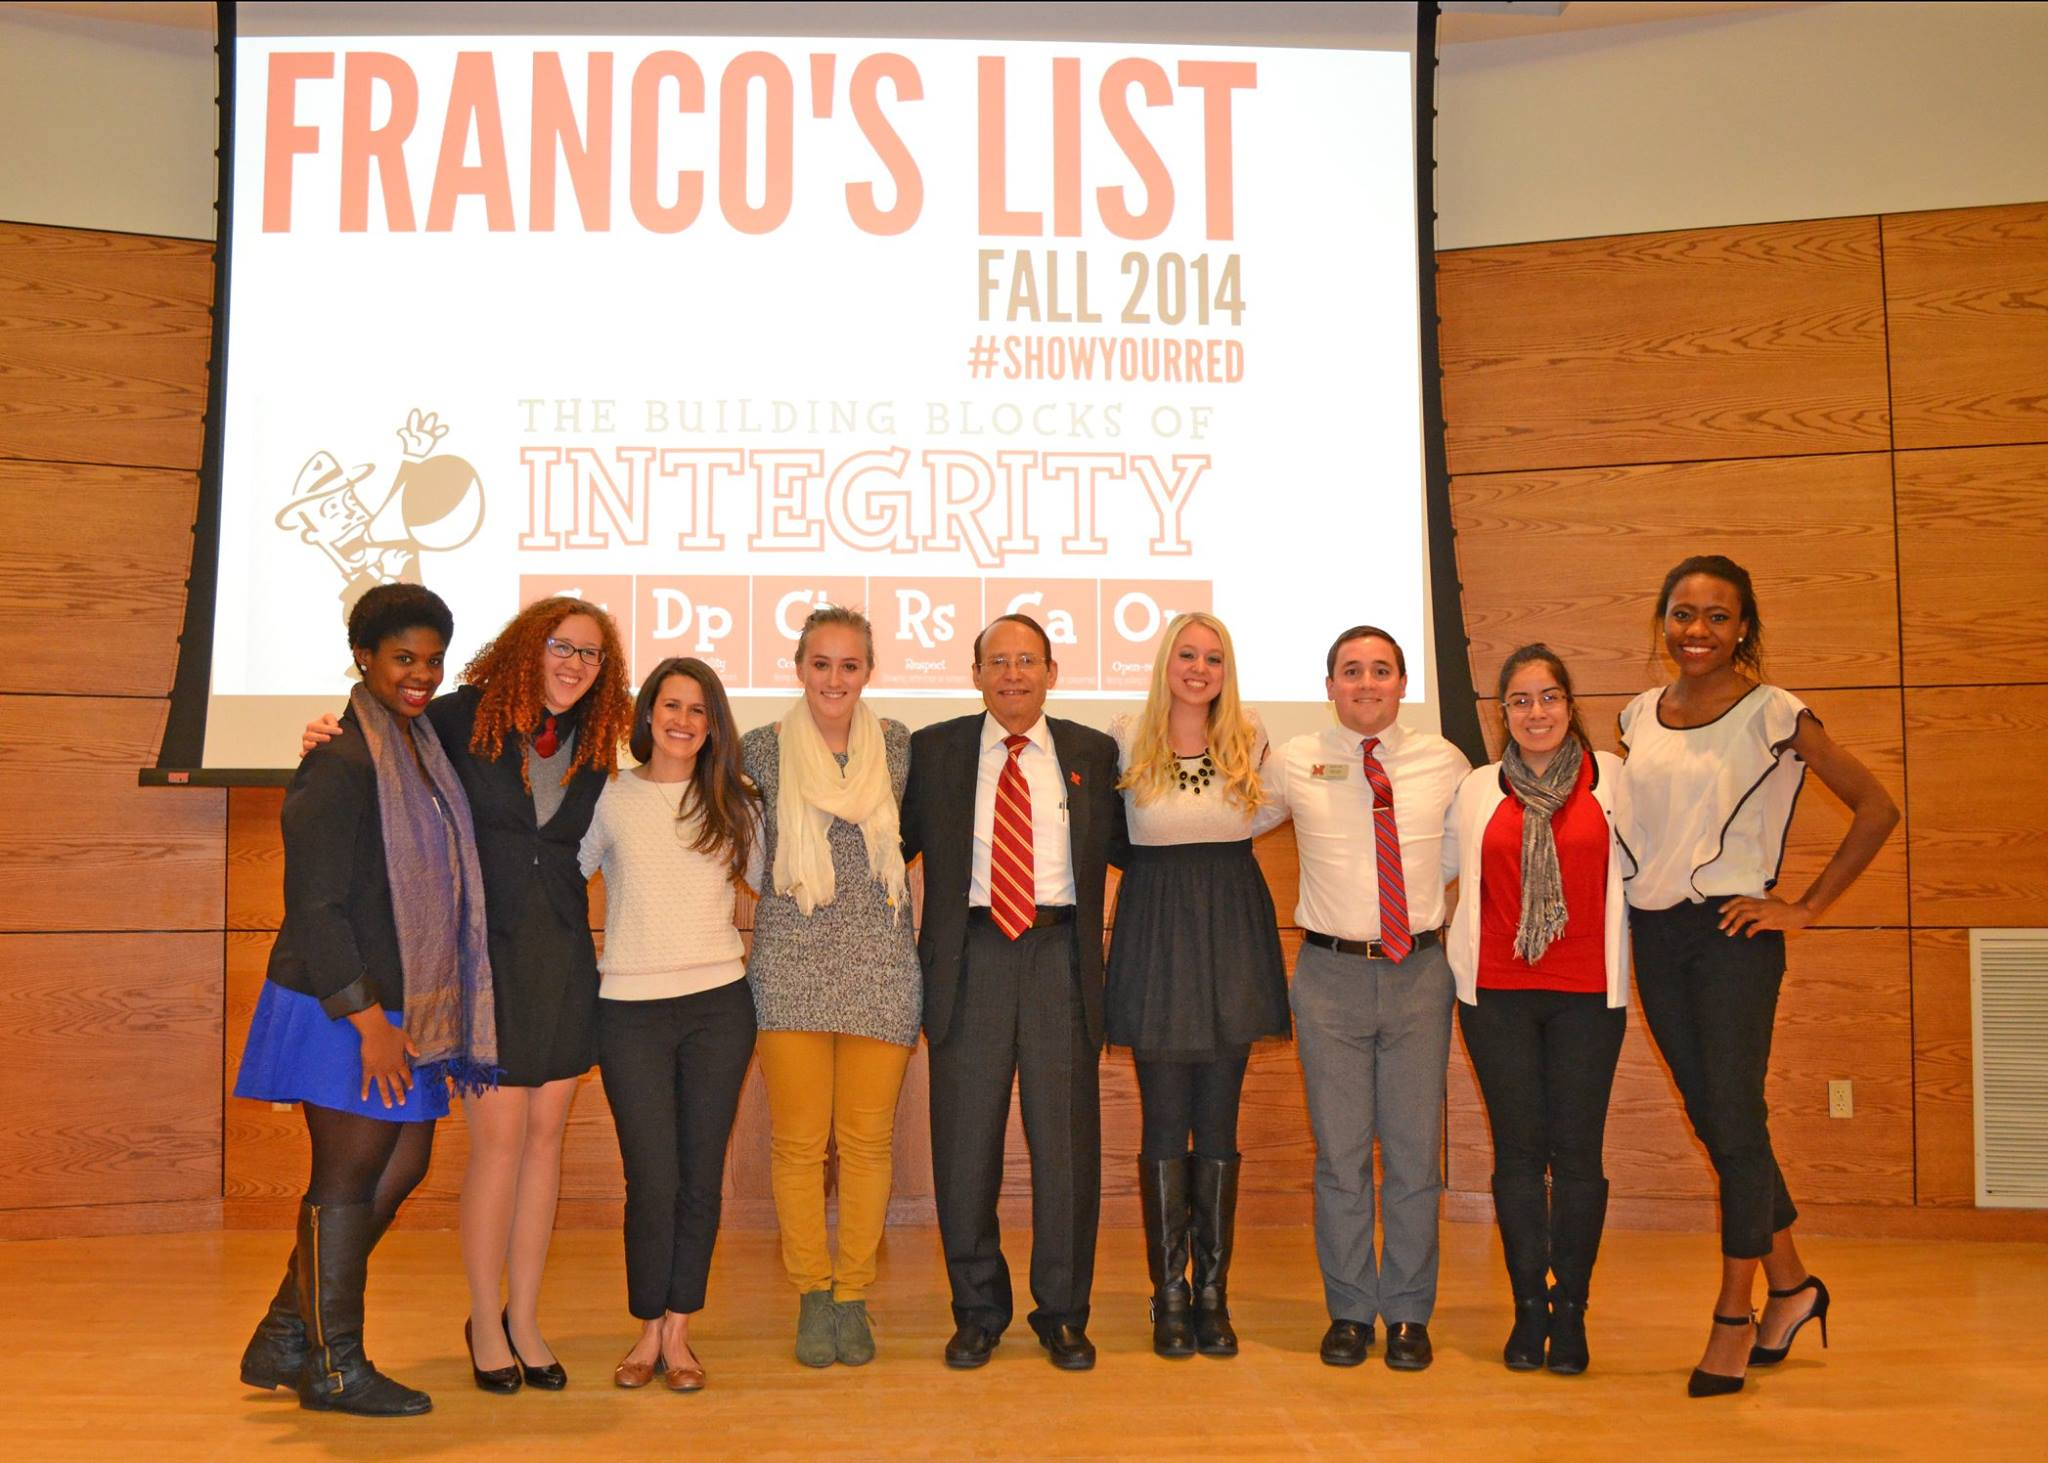 Dr. Franco seeking students of character to apply